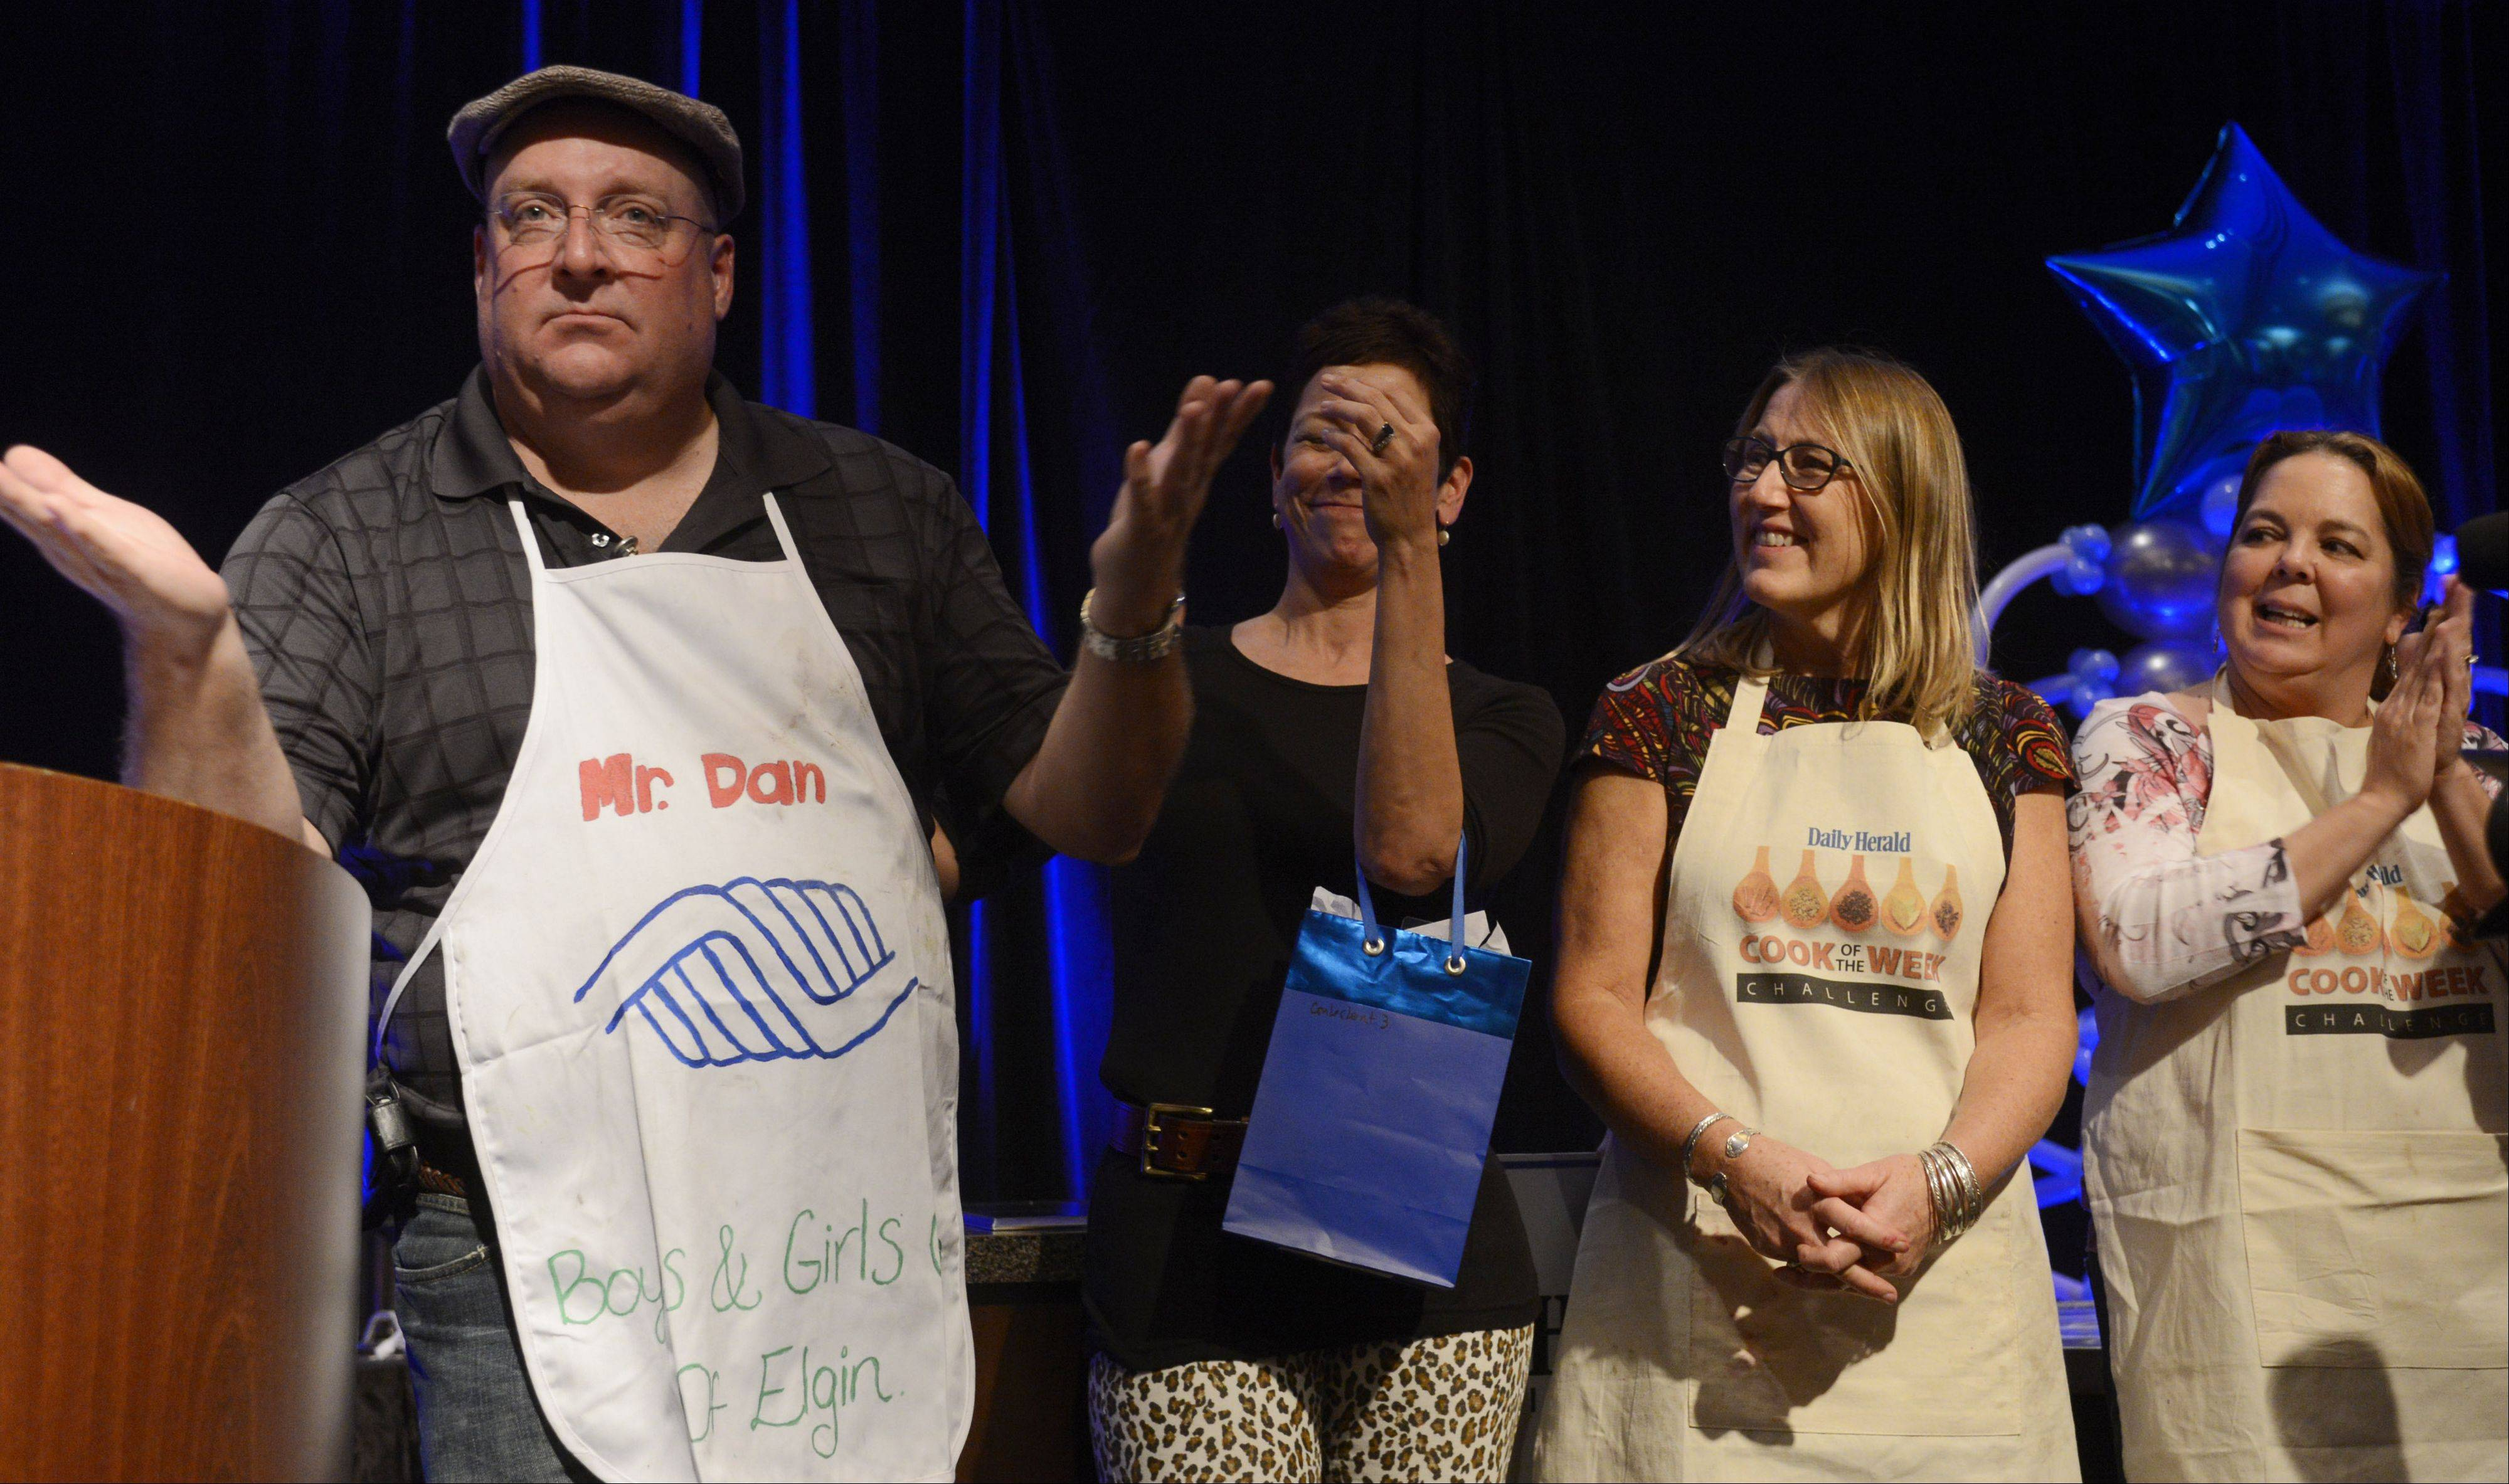 Dan Rich of Elgin won the Daily Herald Cook of the Week Challenge finals on Wednesday.